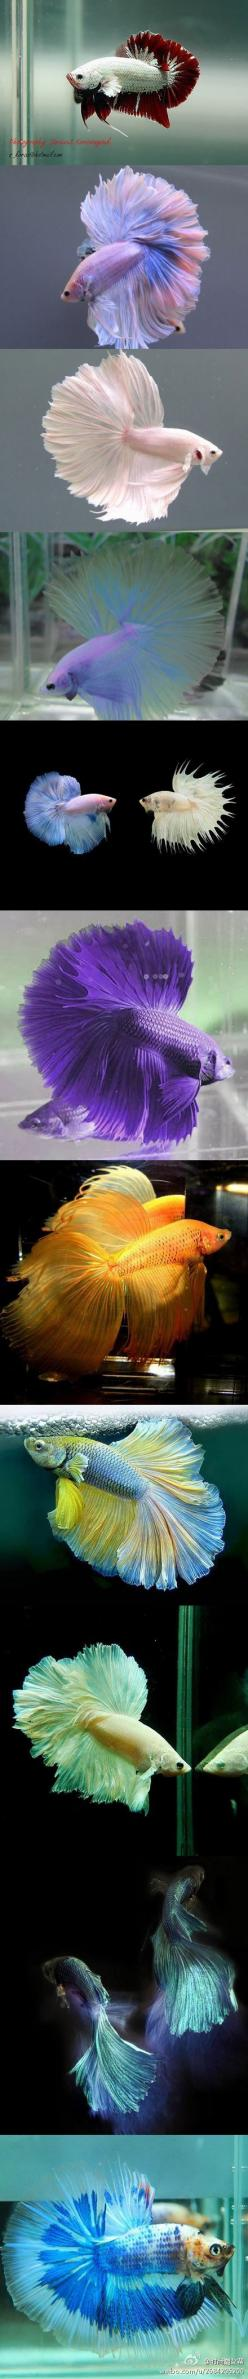 Fancy Fishies!: Beautiful Beta, Pretty Fish, Beta Fish, Fancy Fish, Beautiful Betta, Betta Fish, Animal